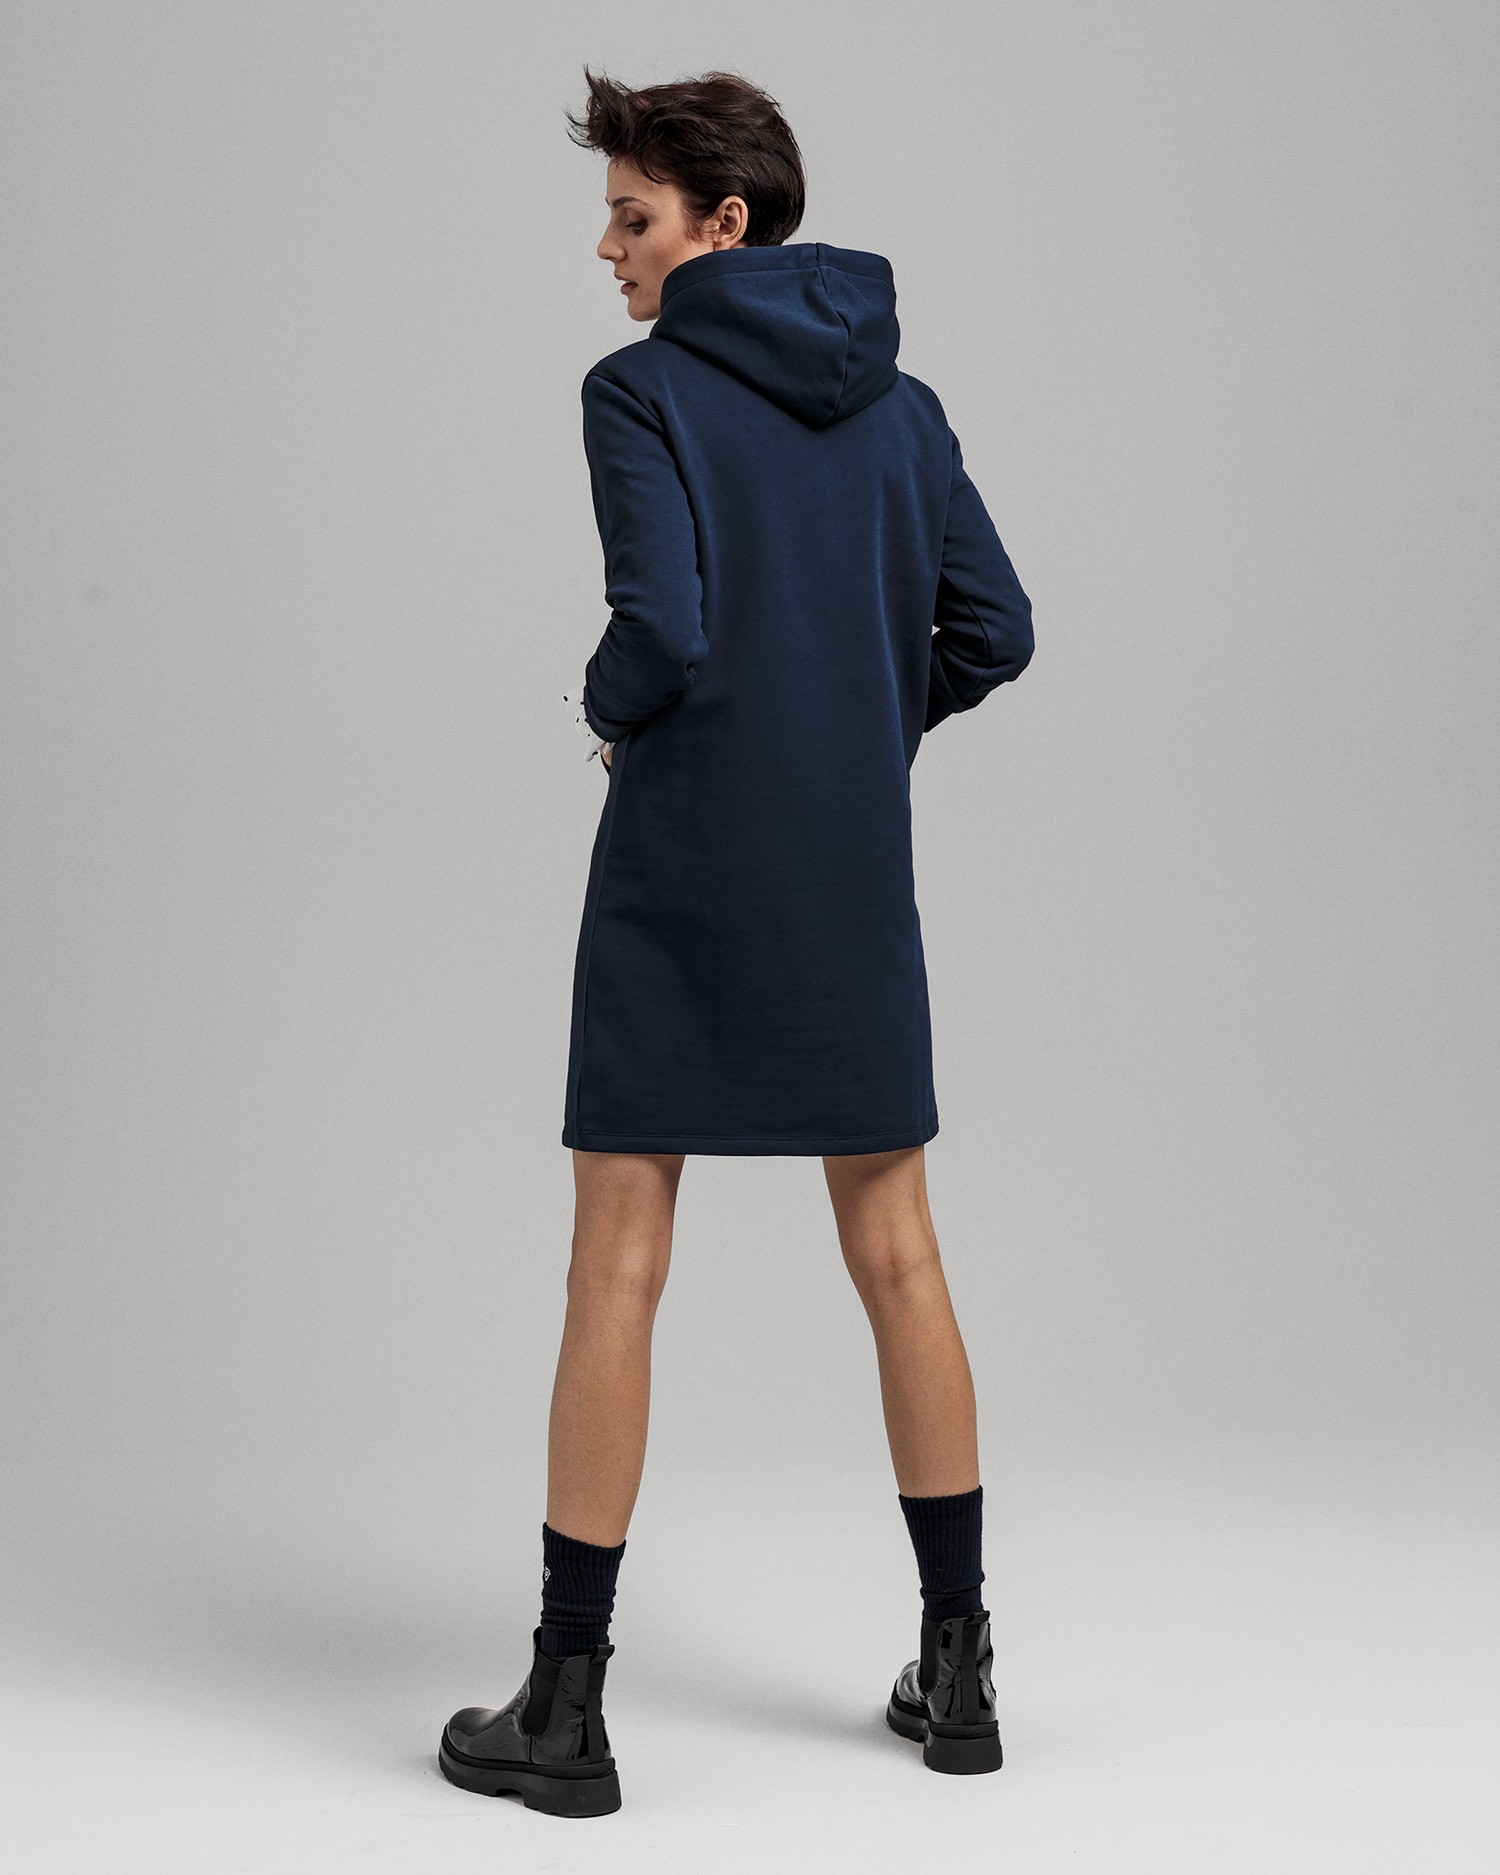 GANT Women's Lock Up Hoodie Dress - 4204356